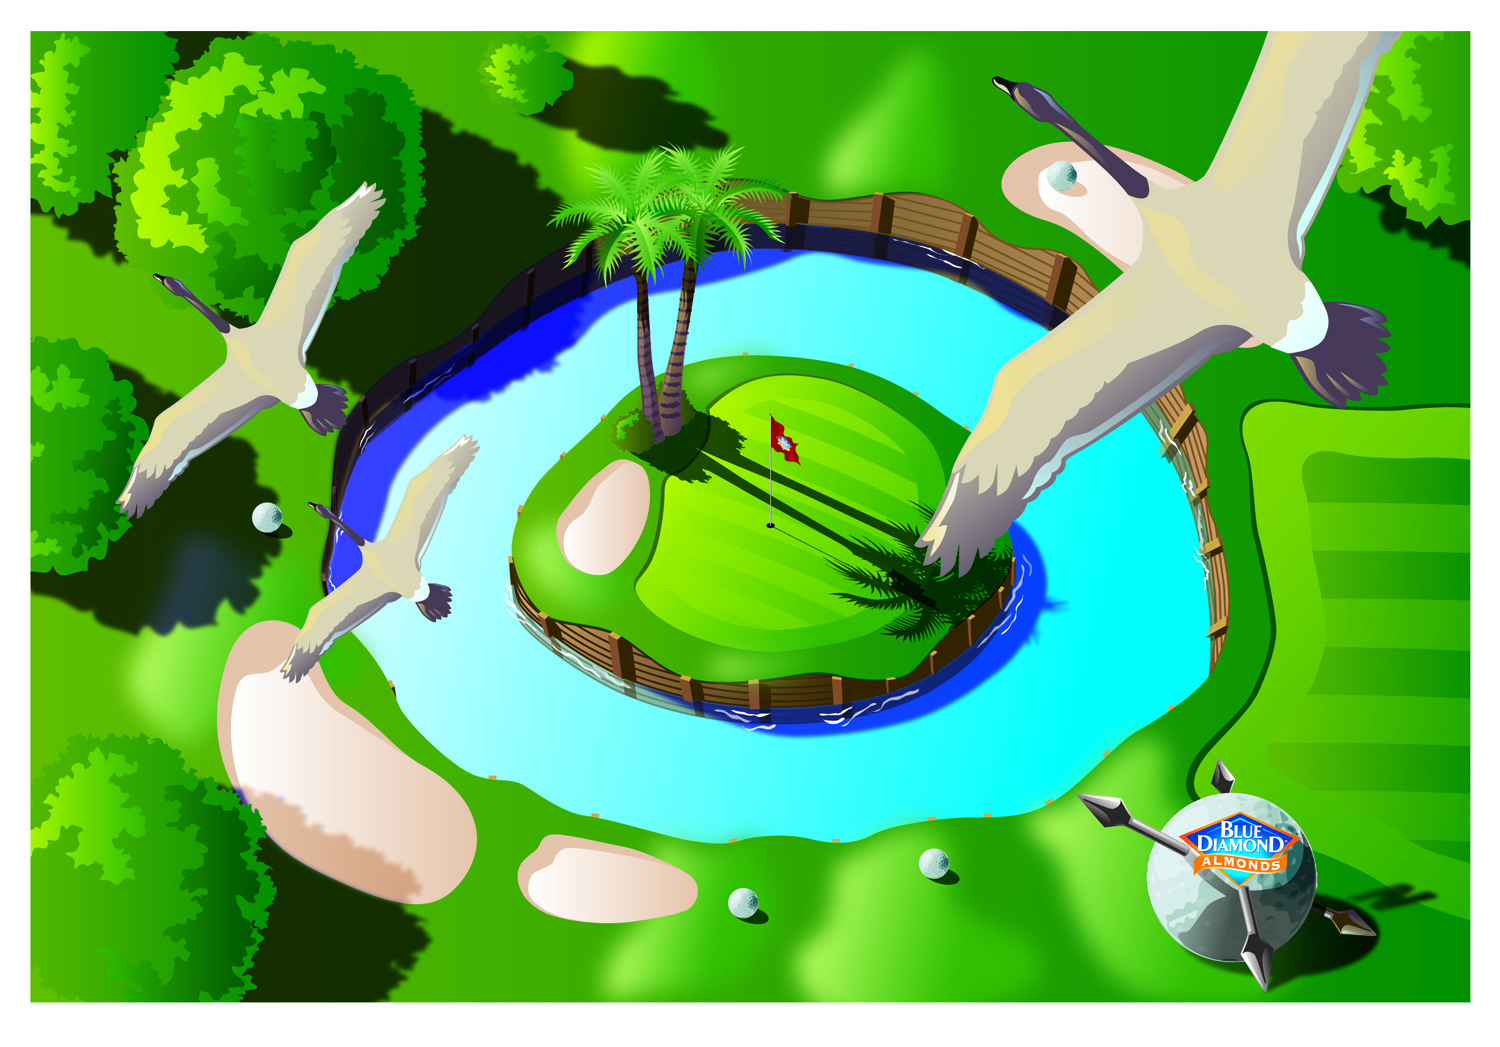 Golf Overhead- Part of an animated game for Blue Diamond Almonds.